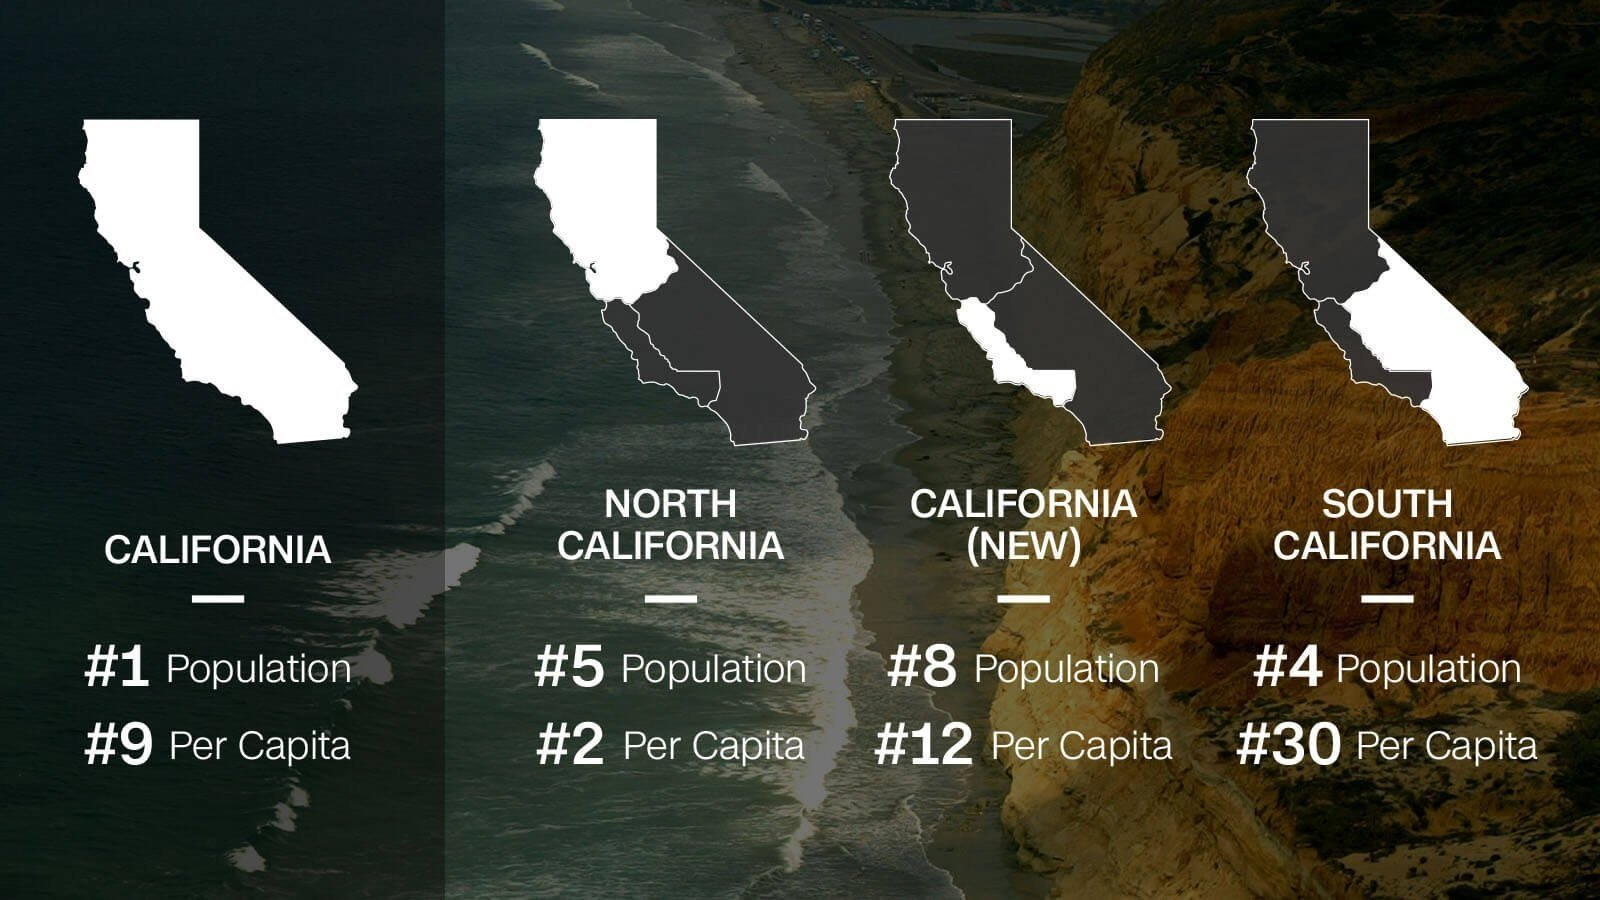 Could California be split into 3 states?